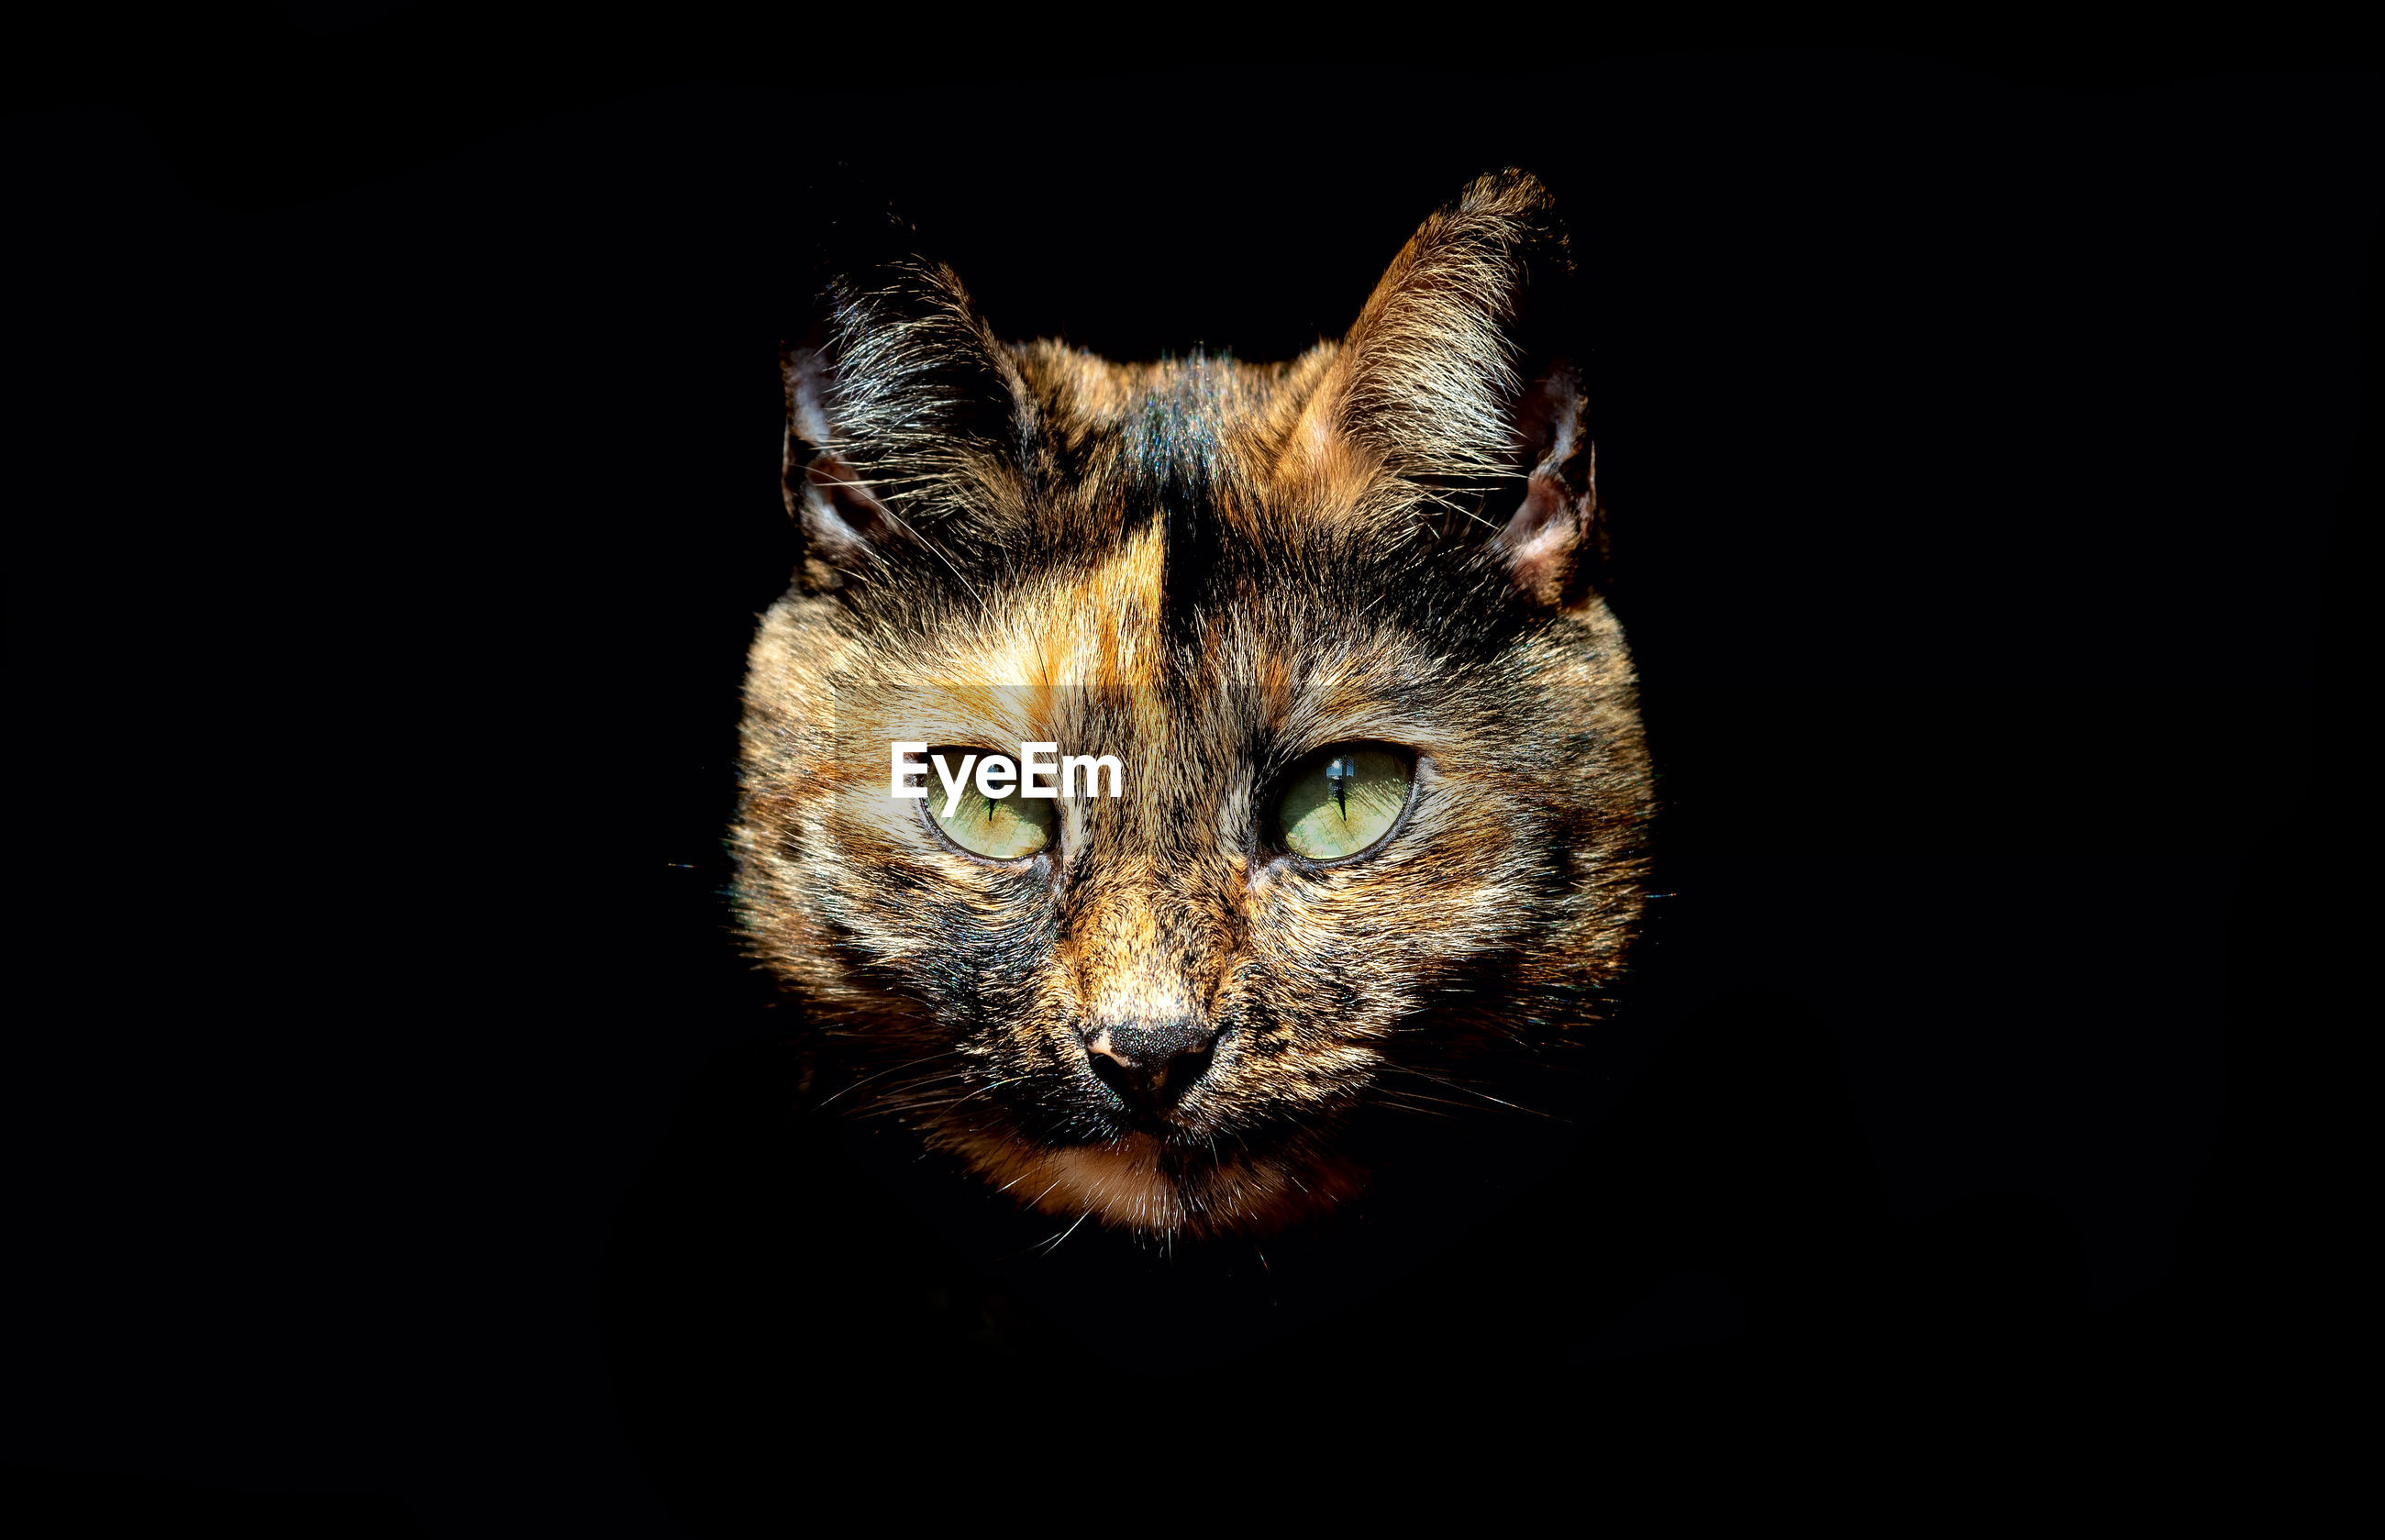 CLOSE-UP PORTRAIT OF CAT WITH BLACK BACKGROUND